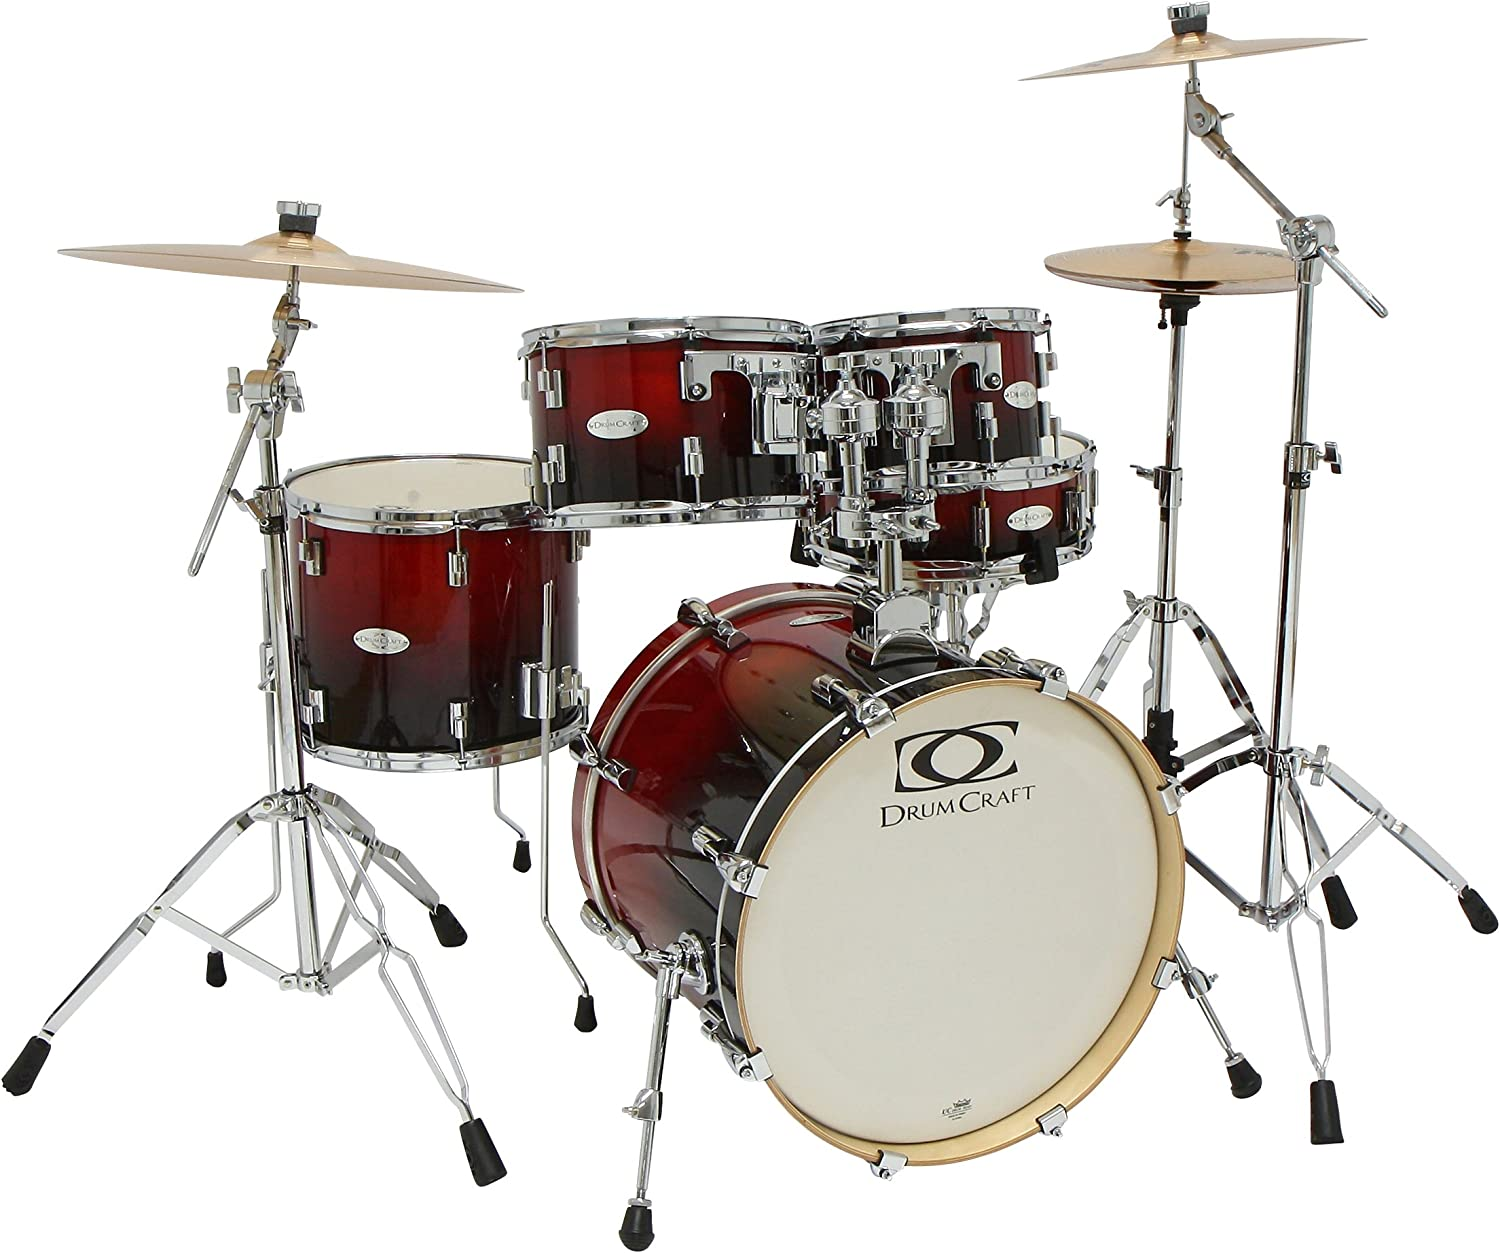 Drum Craft DC805043 Series 5 Jazz Drum Set - Crimson Fade